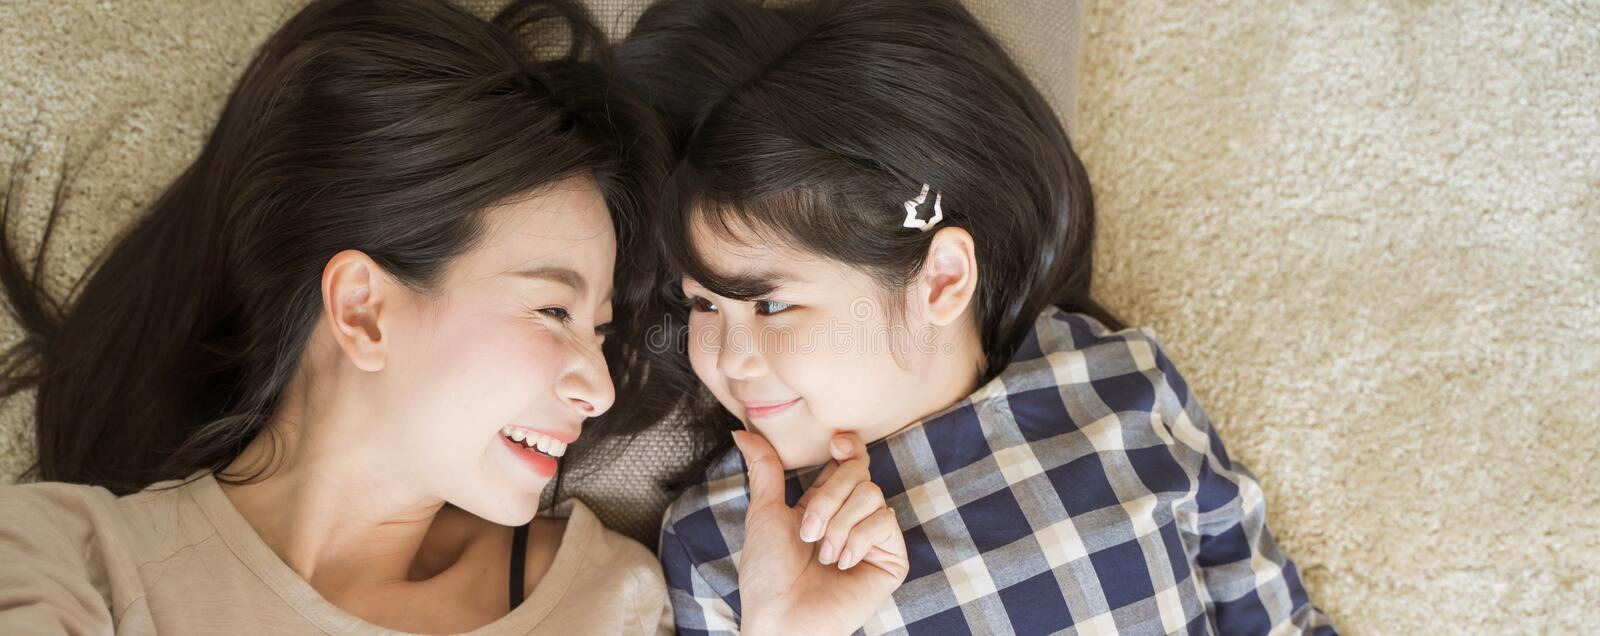 Mother and daughter child girl spending time together in the bedroom Look at each other and smiling .Happy Asian family. royalty free stock images